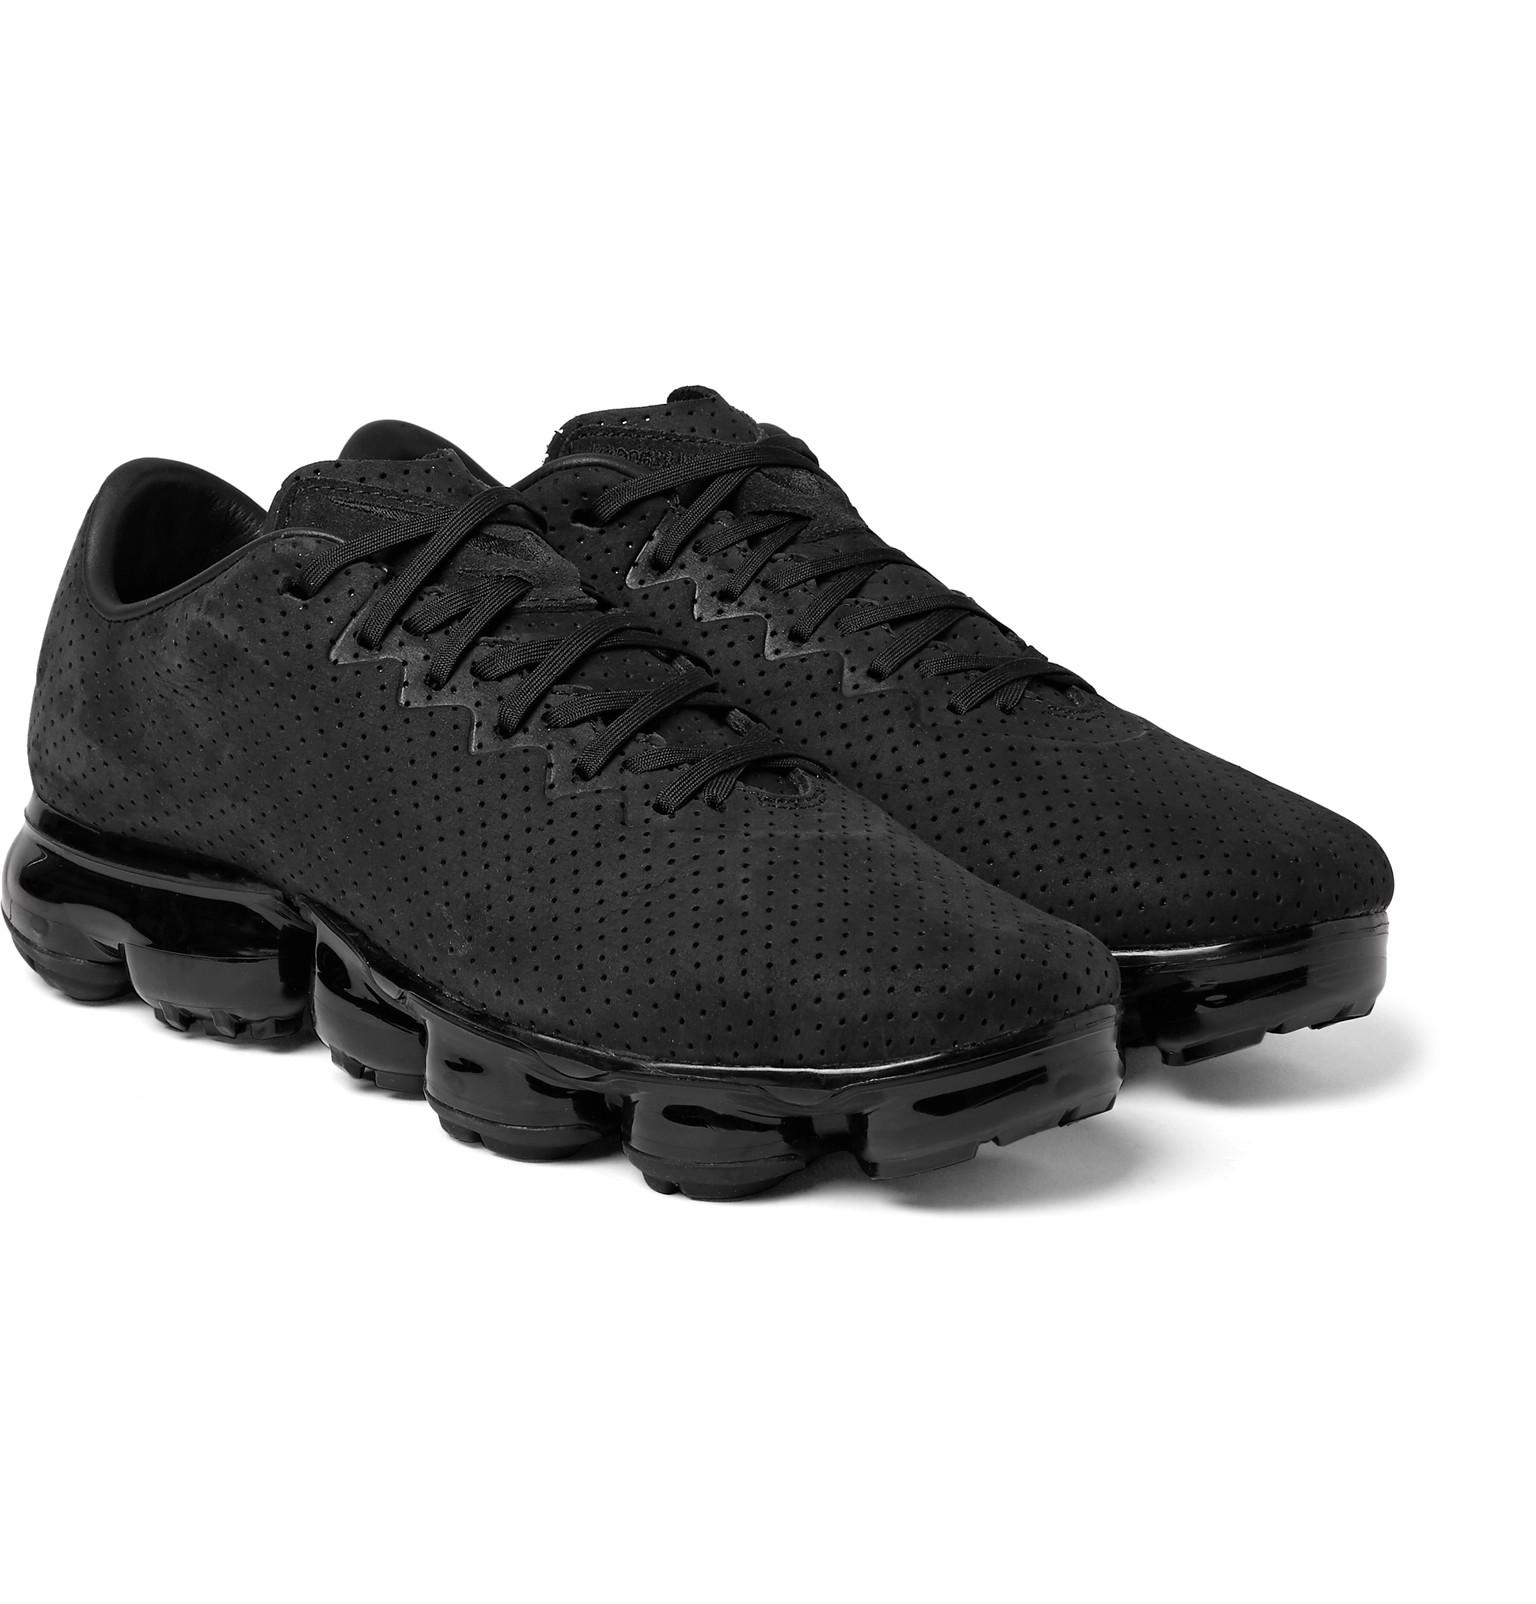 079652db1c11f Lyst - Nike Air Vapormax Ltr Perforated Suede Sneakers in Black for Men